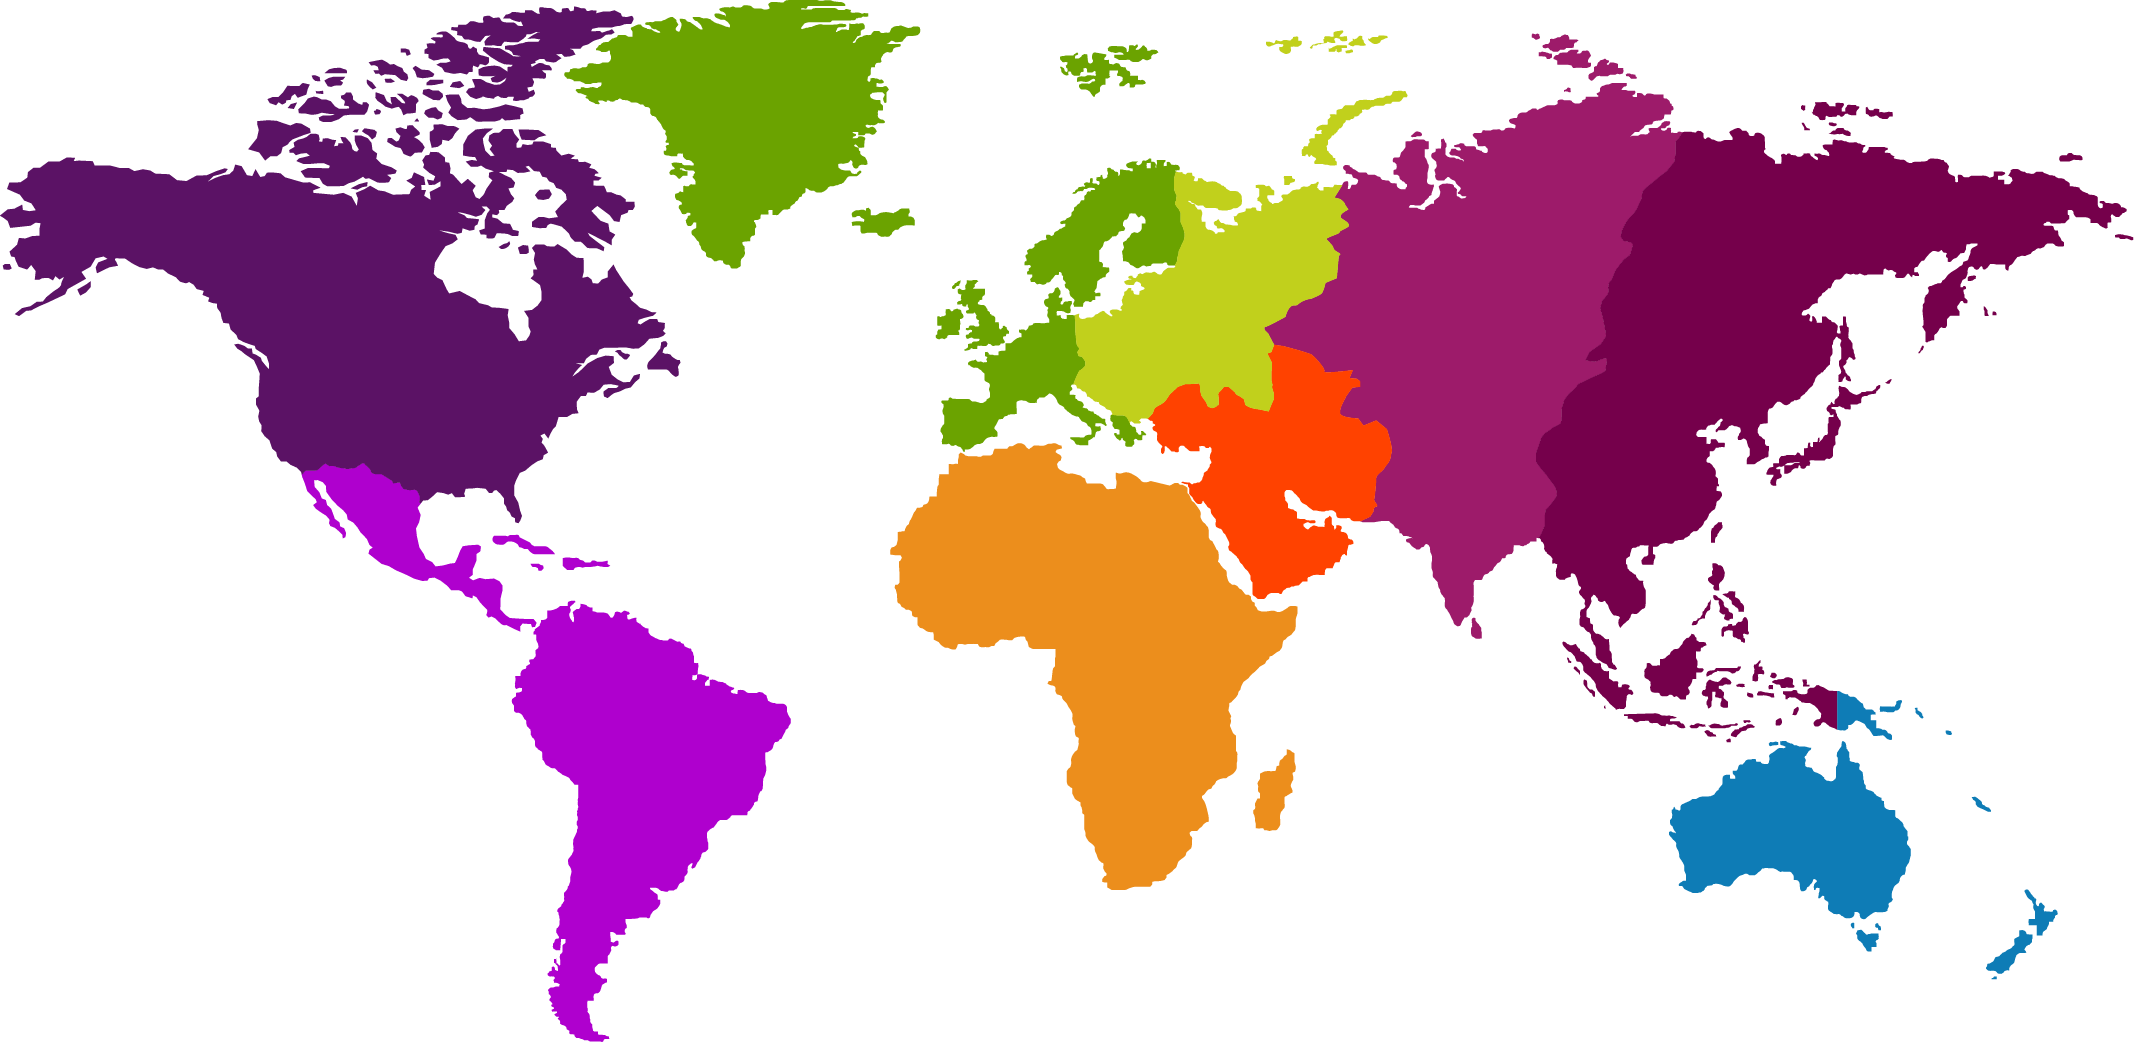 Map of World Continent